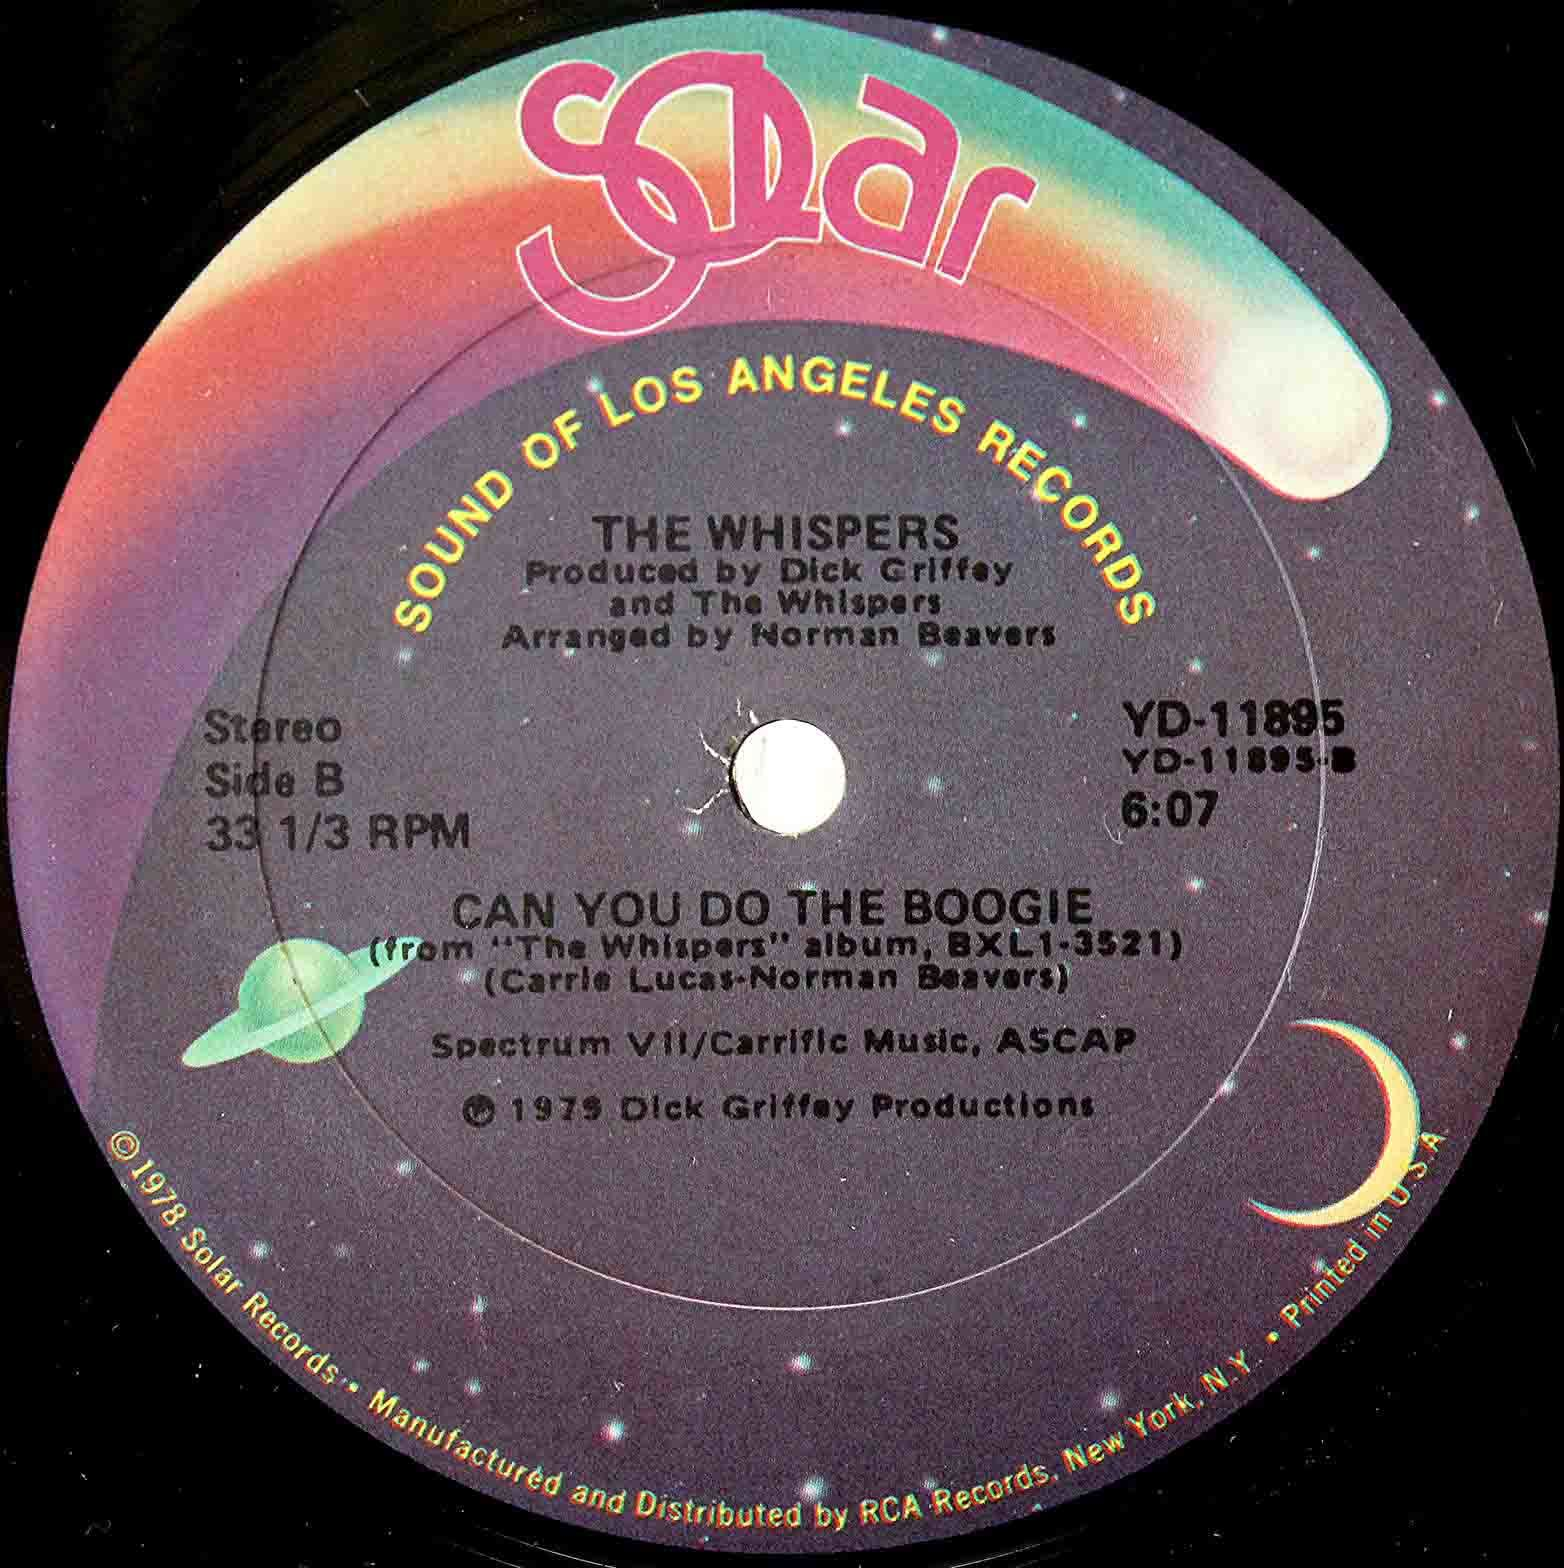 The Whispers - And the Beat Goes On 04